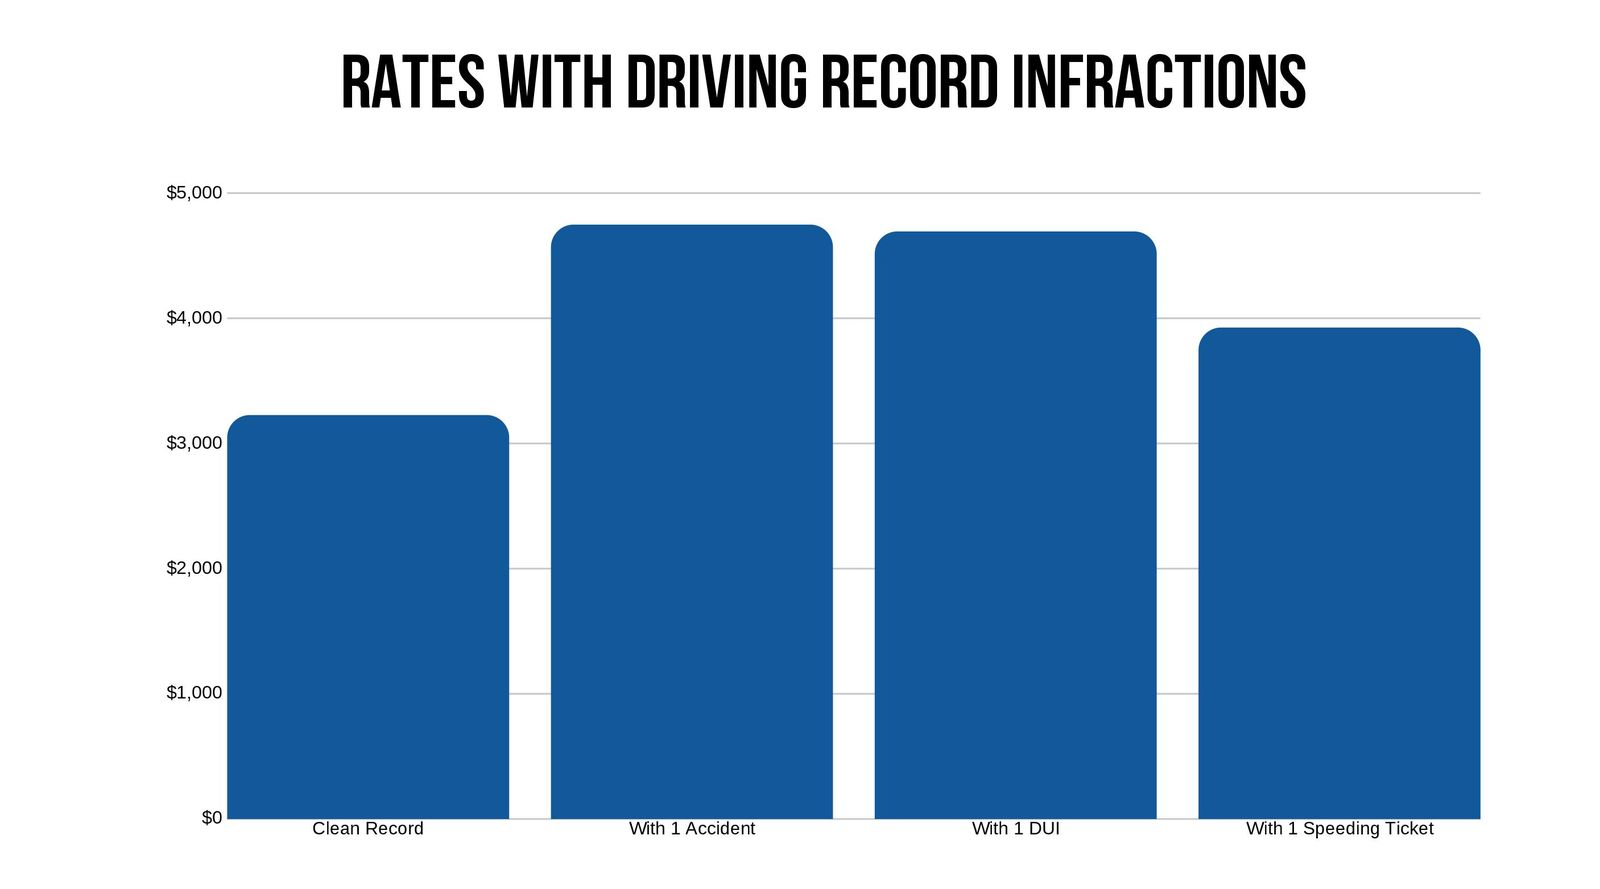 Oklahoma Driving Record Infractions Rates